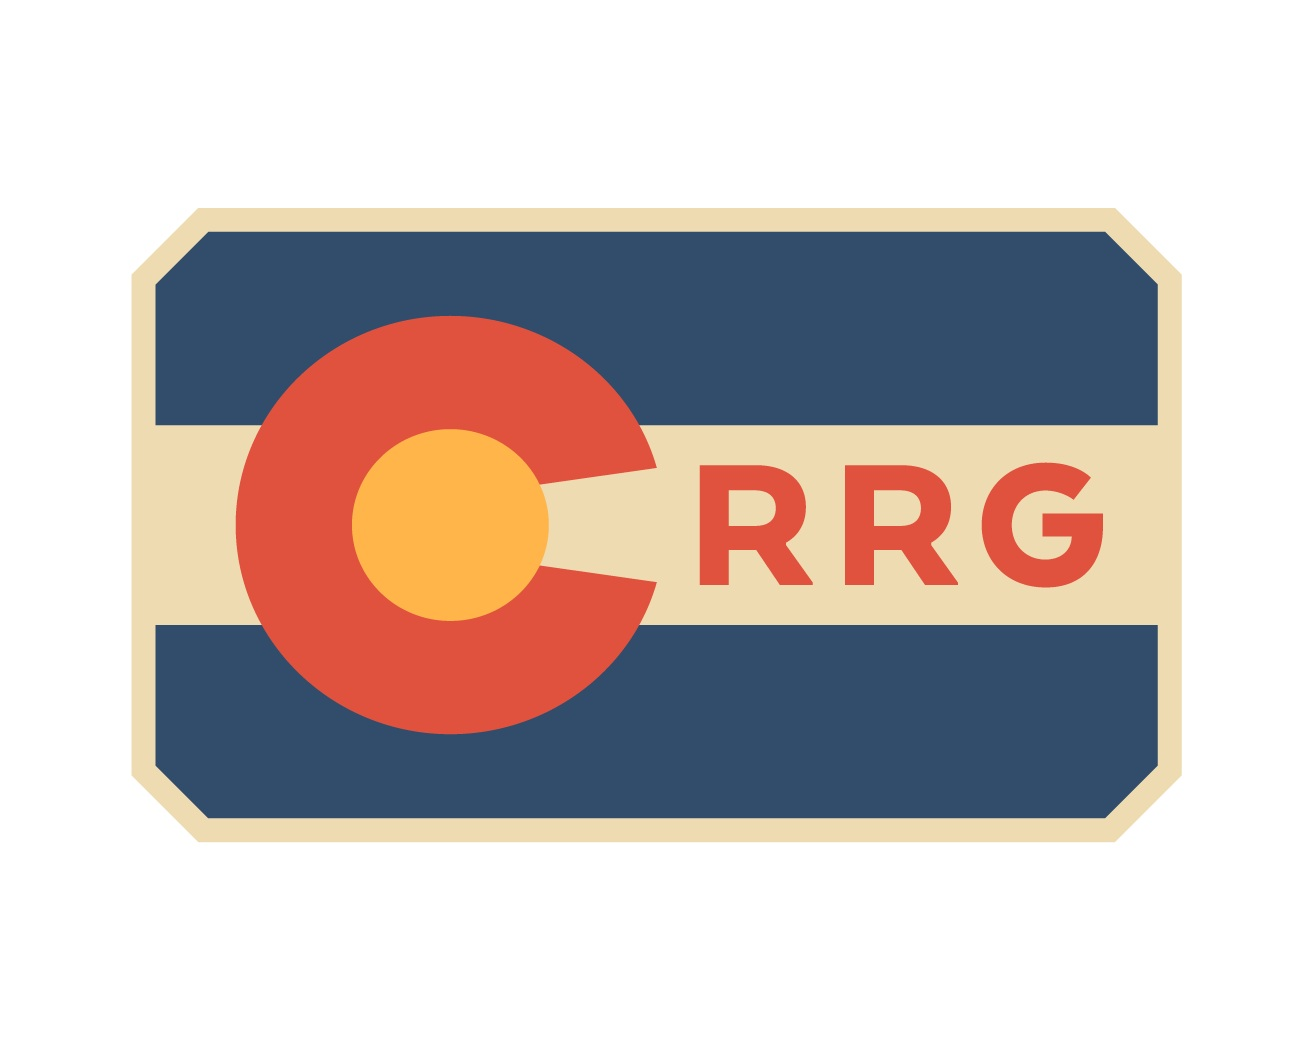 Red Rocks glamping colorado flag icon